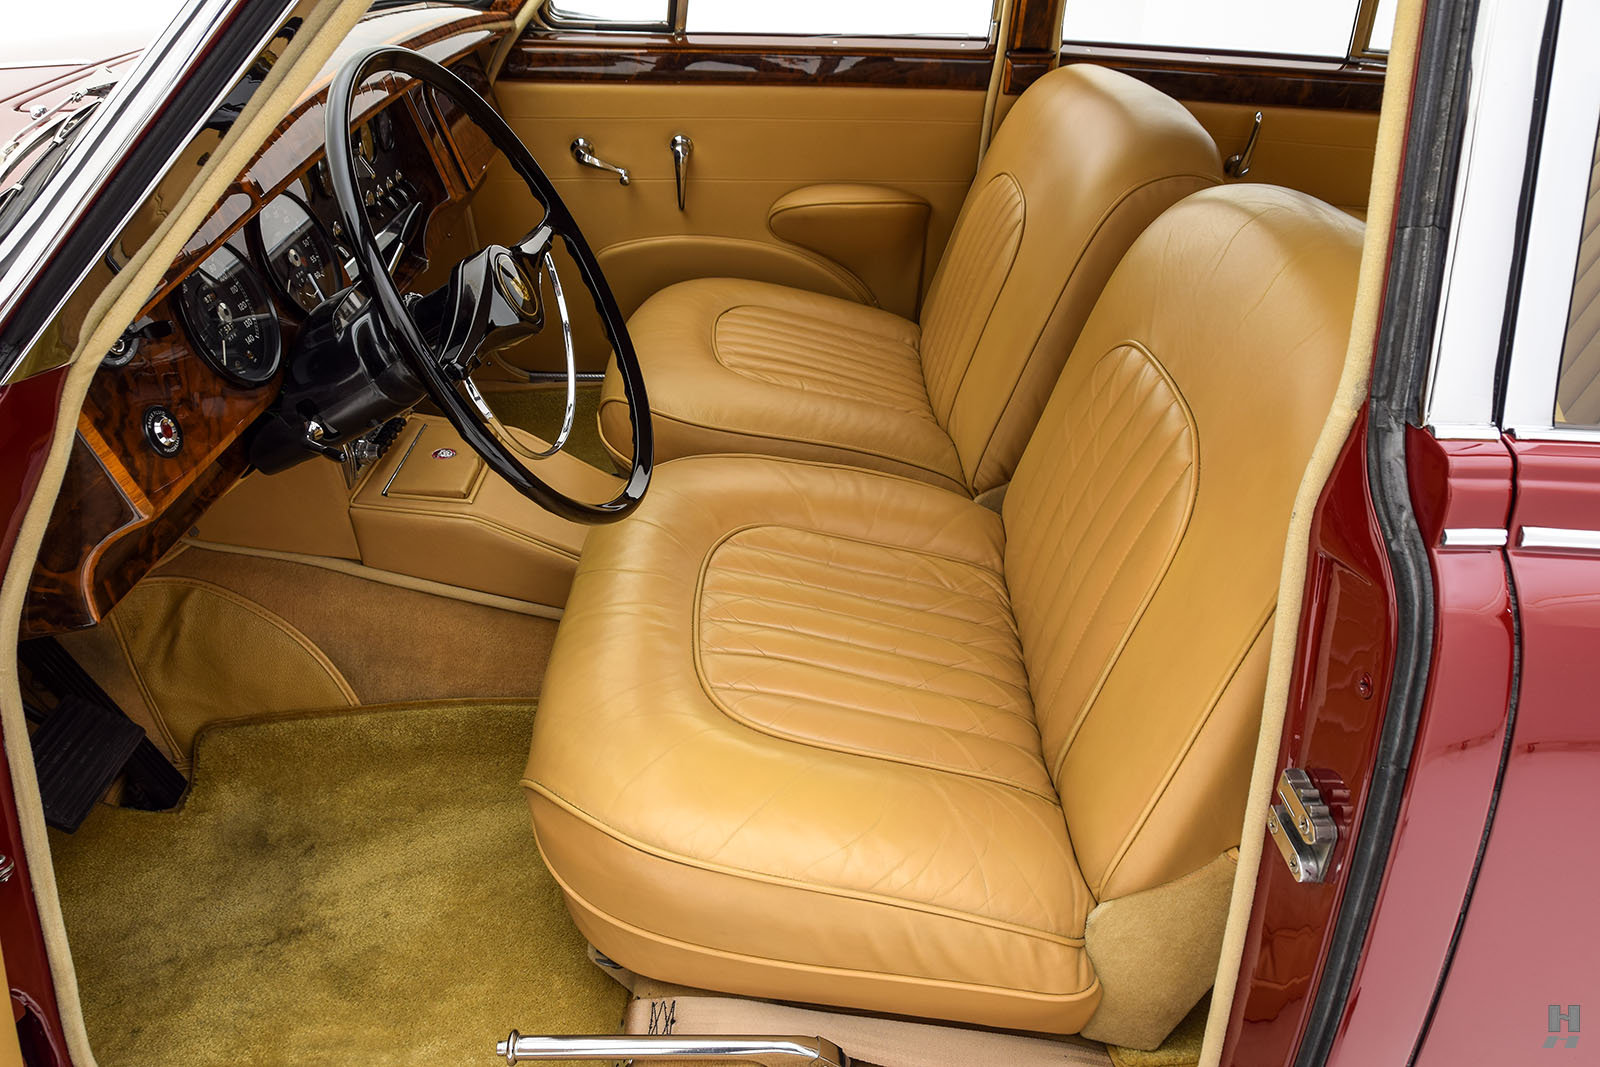 1962 JAGUAR MARK II 3.8 SALOON For Sale (picture 3 of 6)